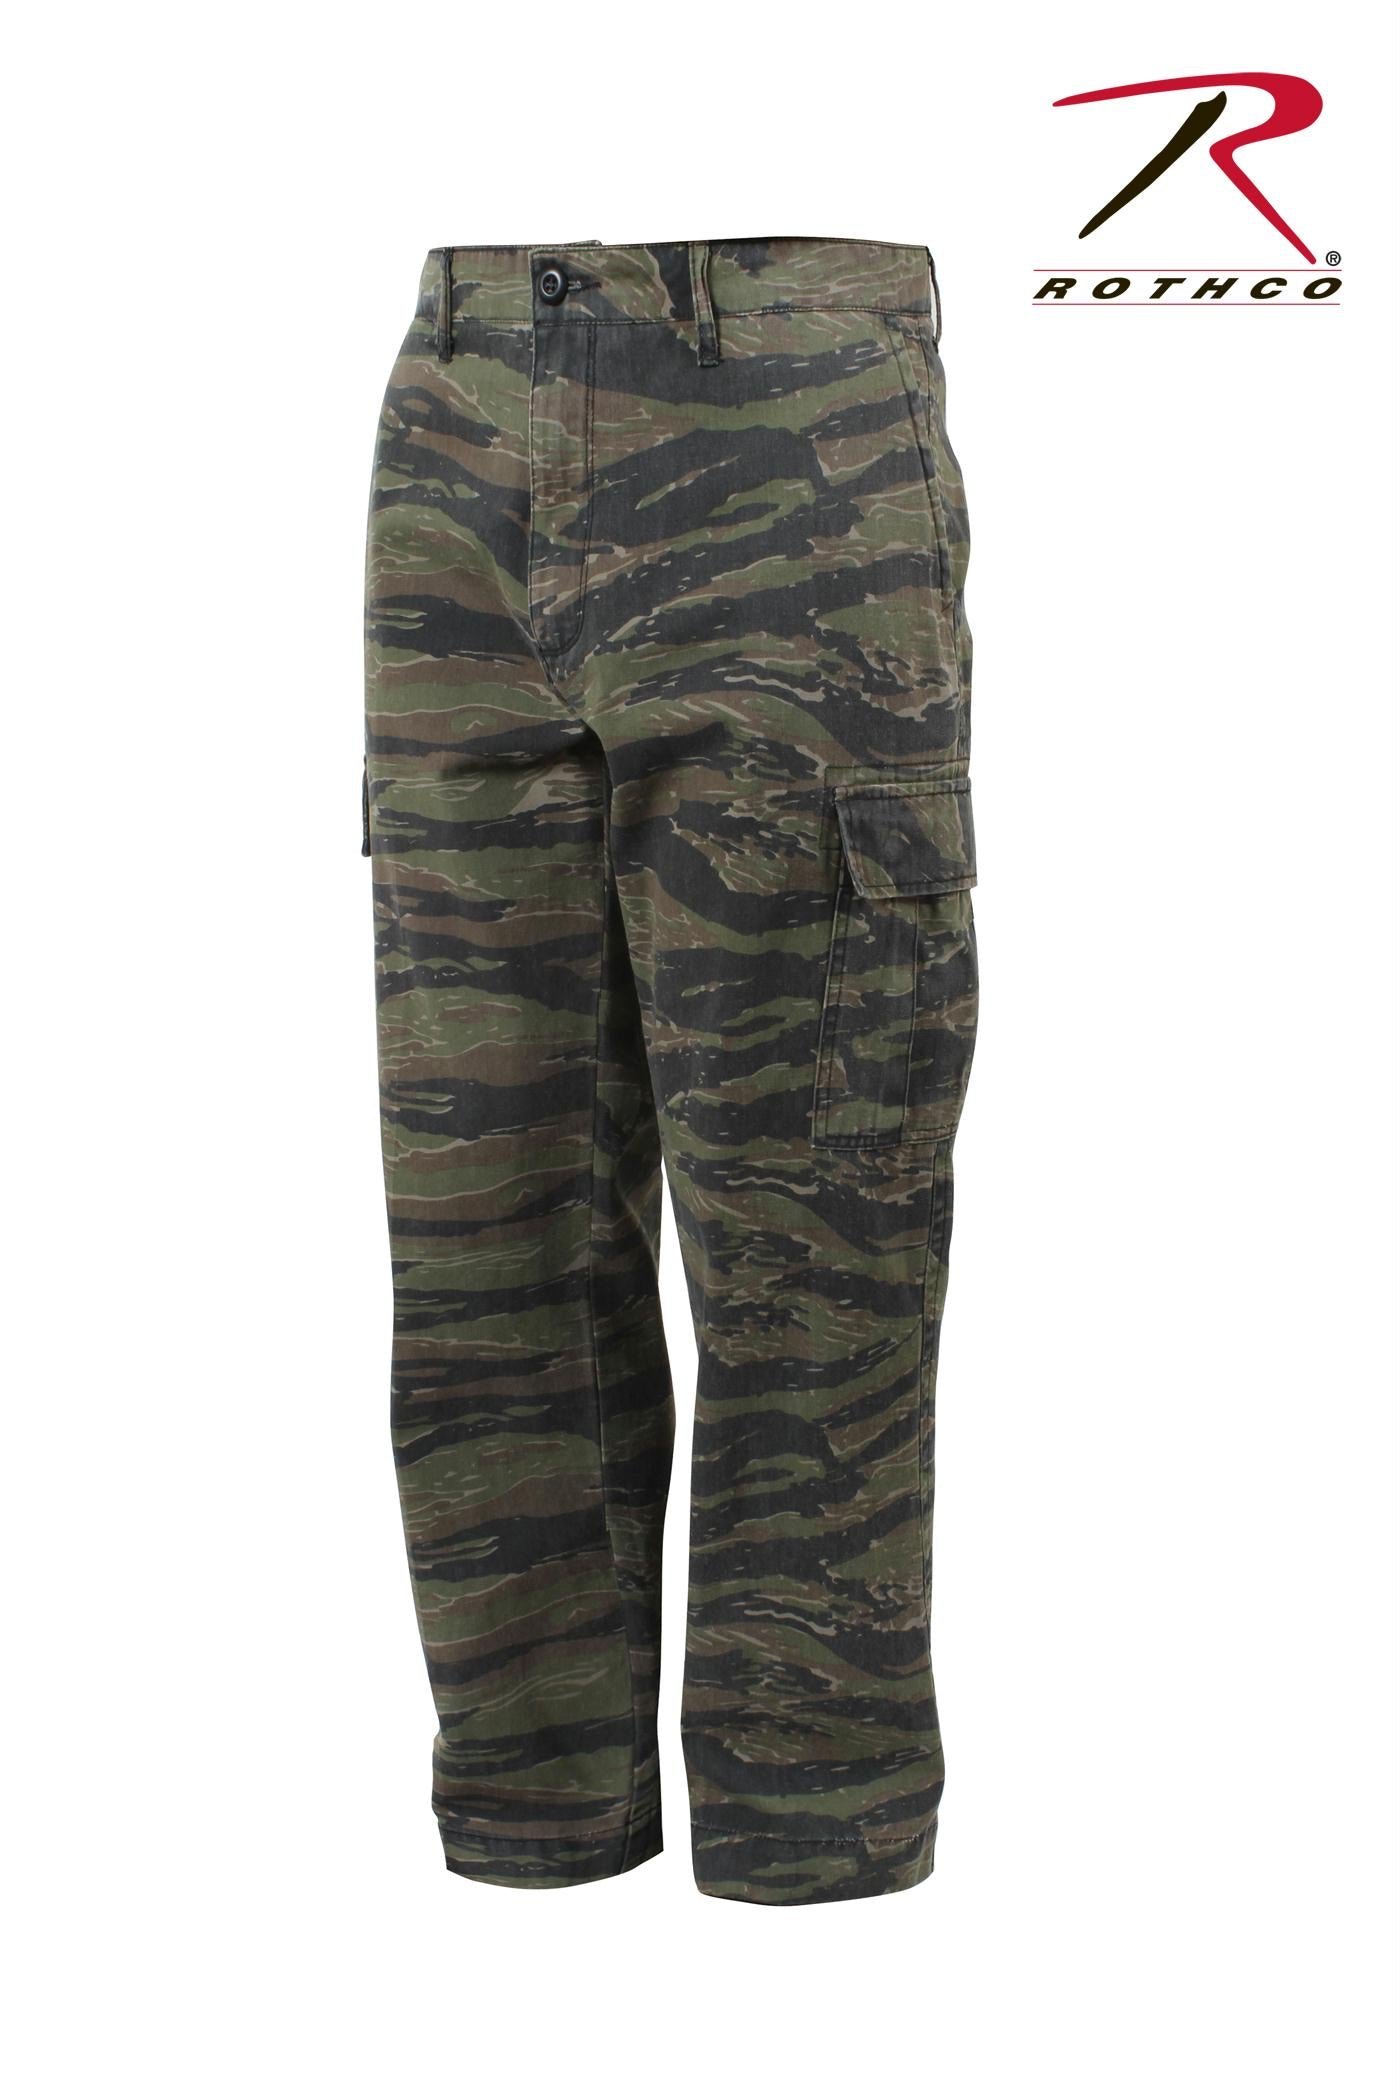 Rothco Vintage 6-Pocket Flat Front Fatigue Pants - Tiger Stripe Camo / 42